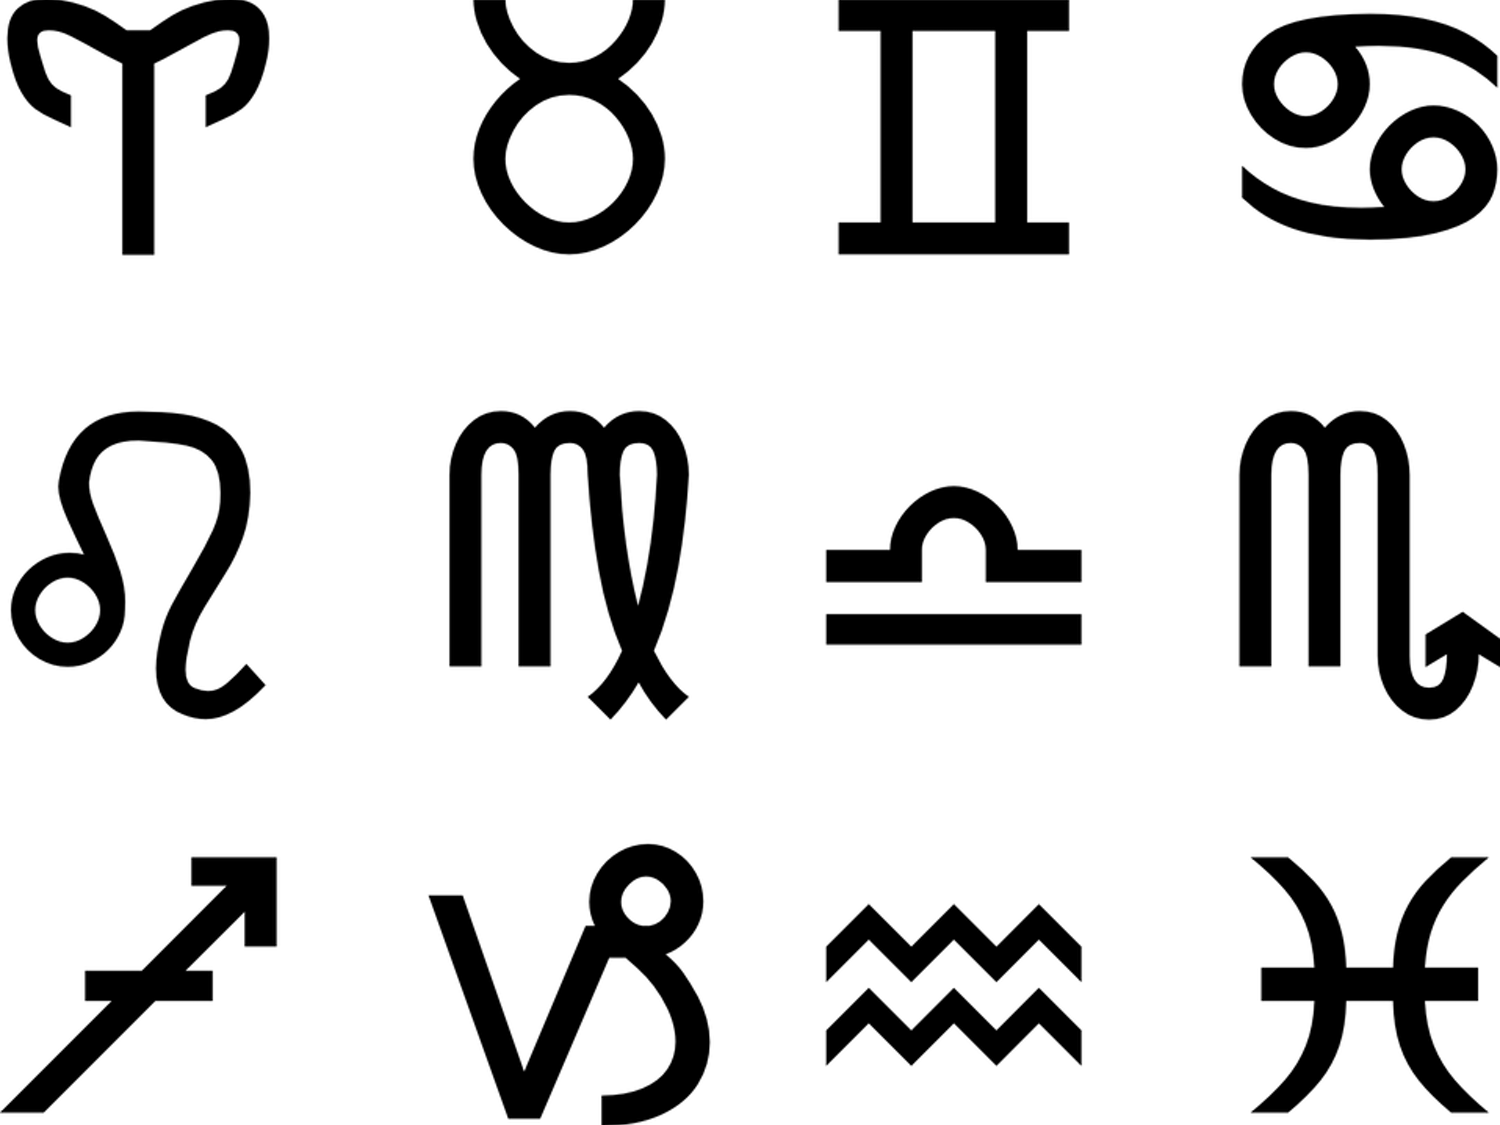 signs-of-the-zodiac-160494_960_720.png